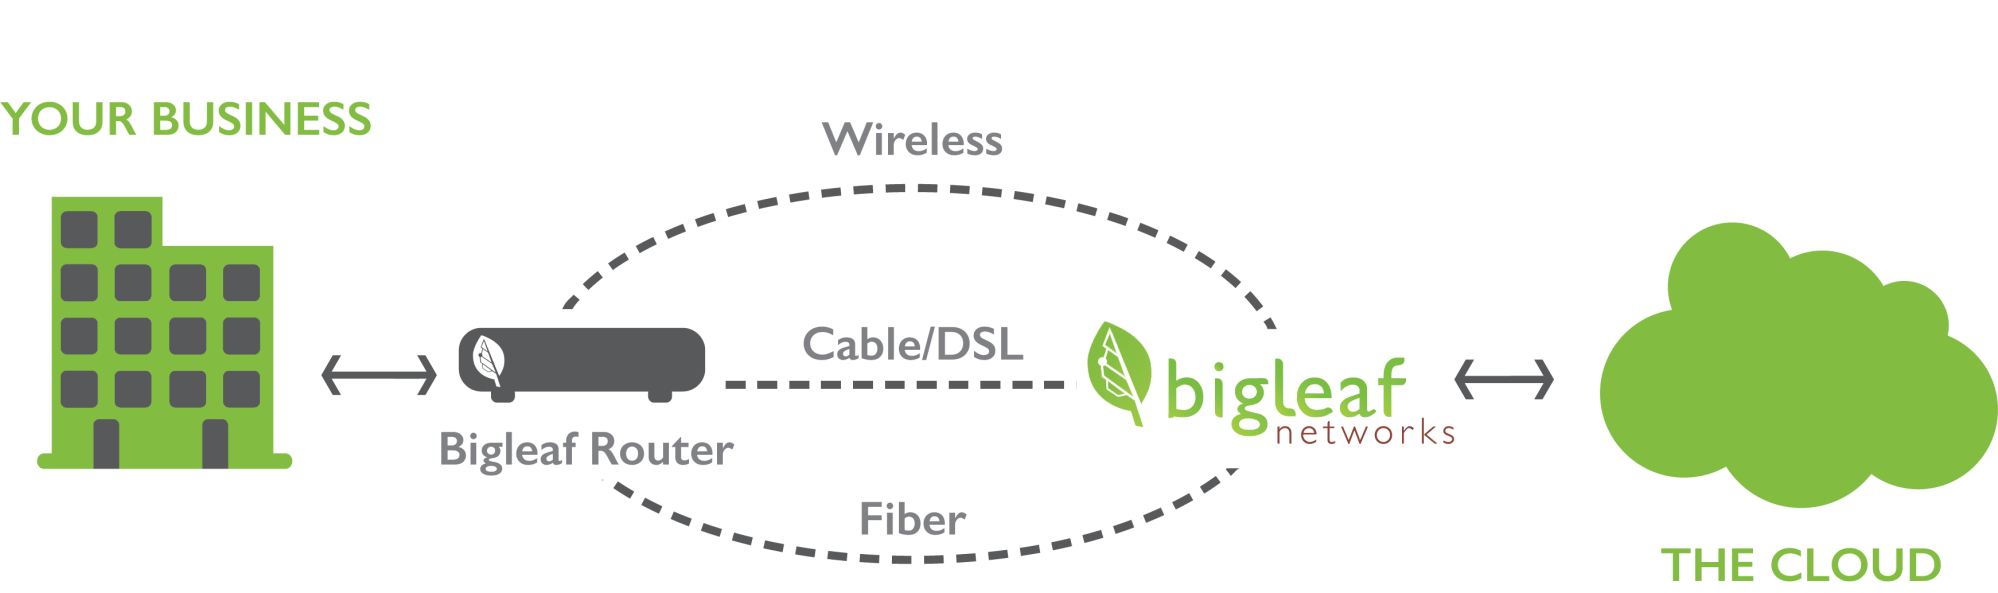 hight resolution of bigleaf s software defined wide area network sd wan technology ensures that your business critical applications are prioritized across your internet